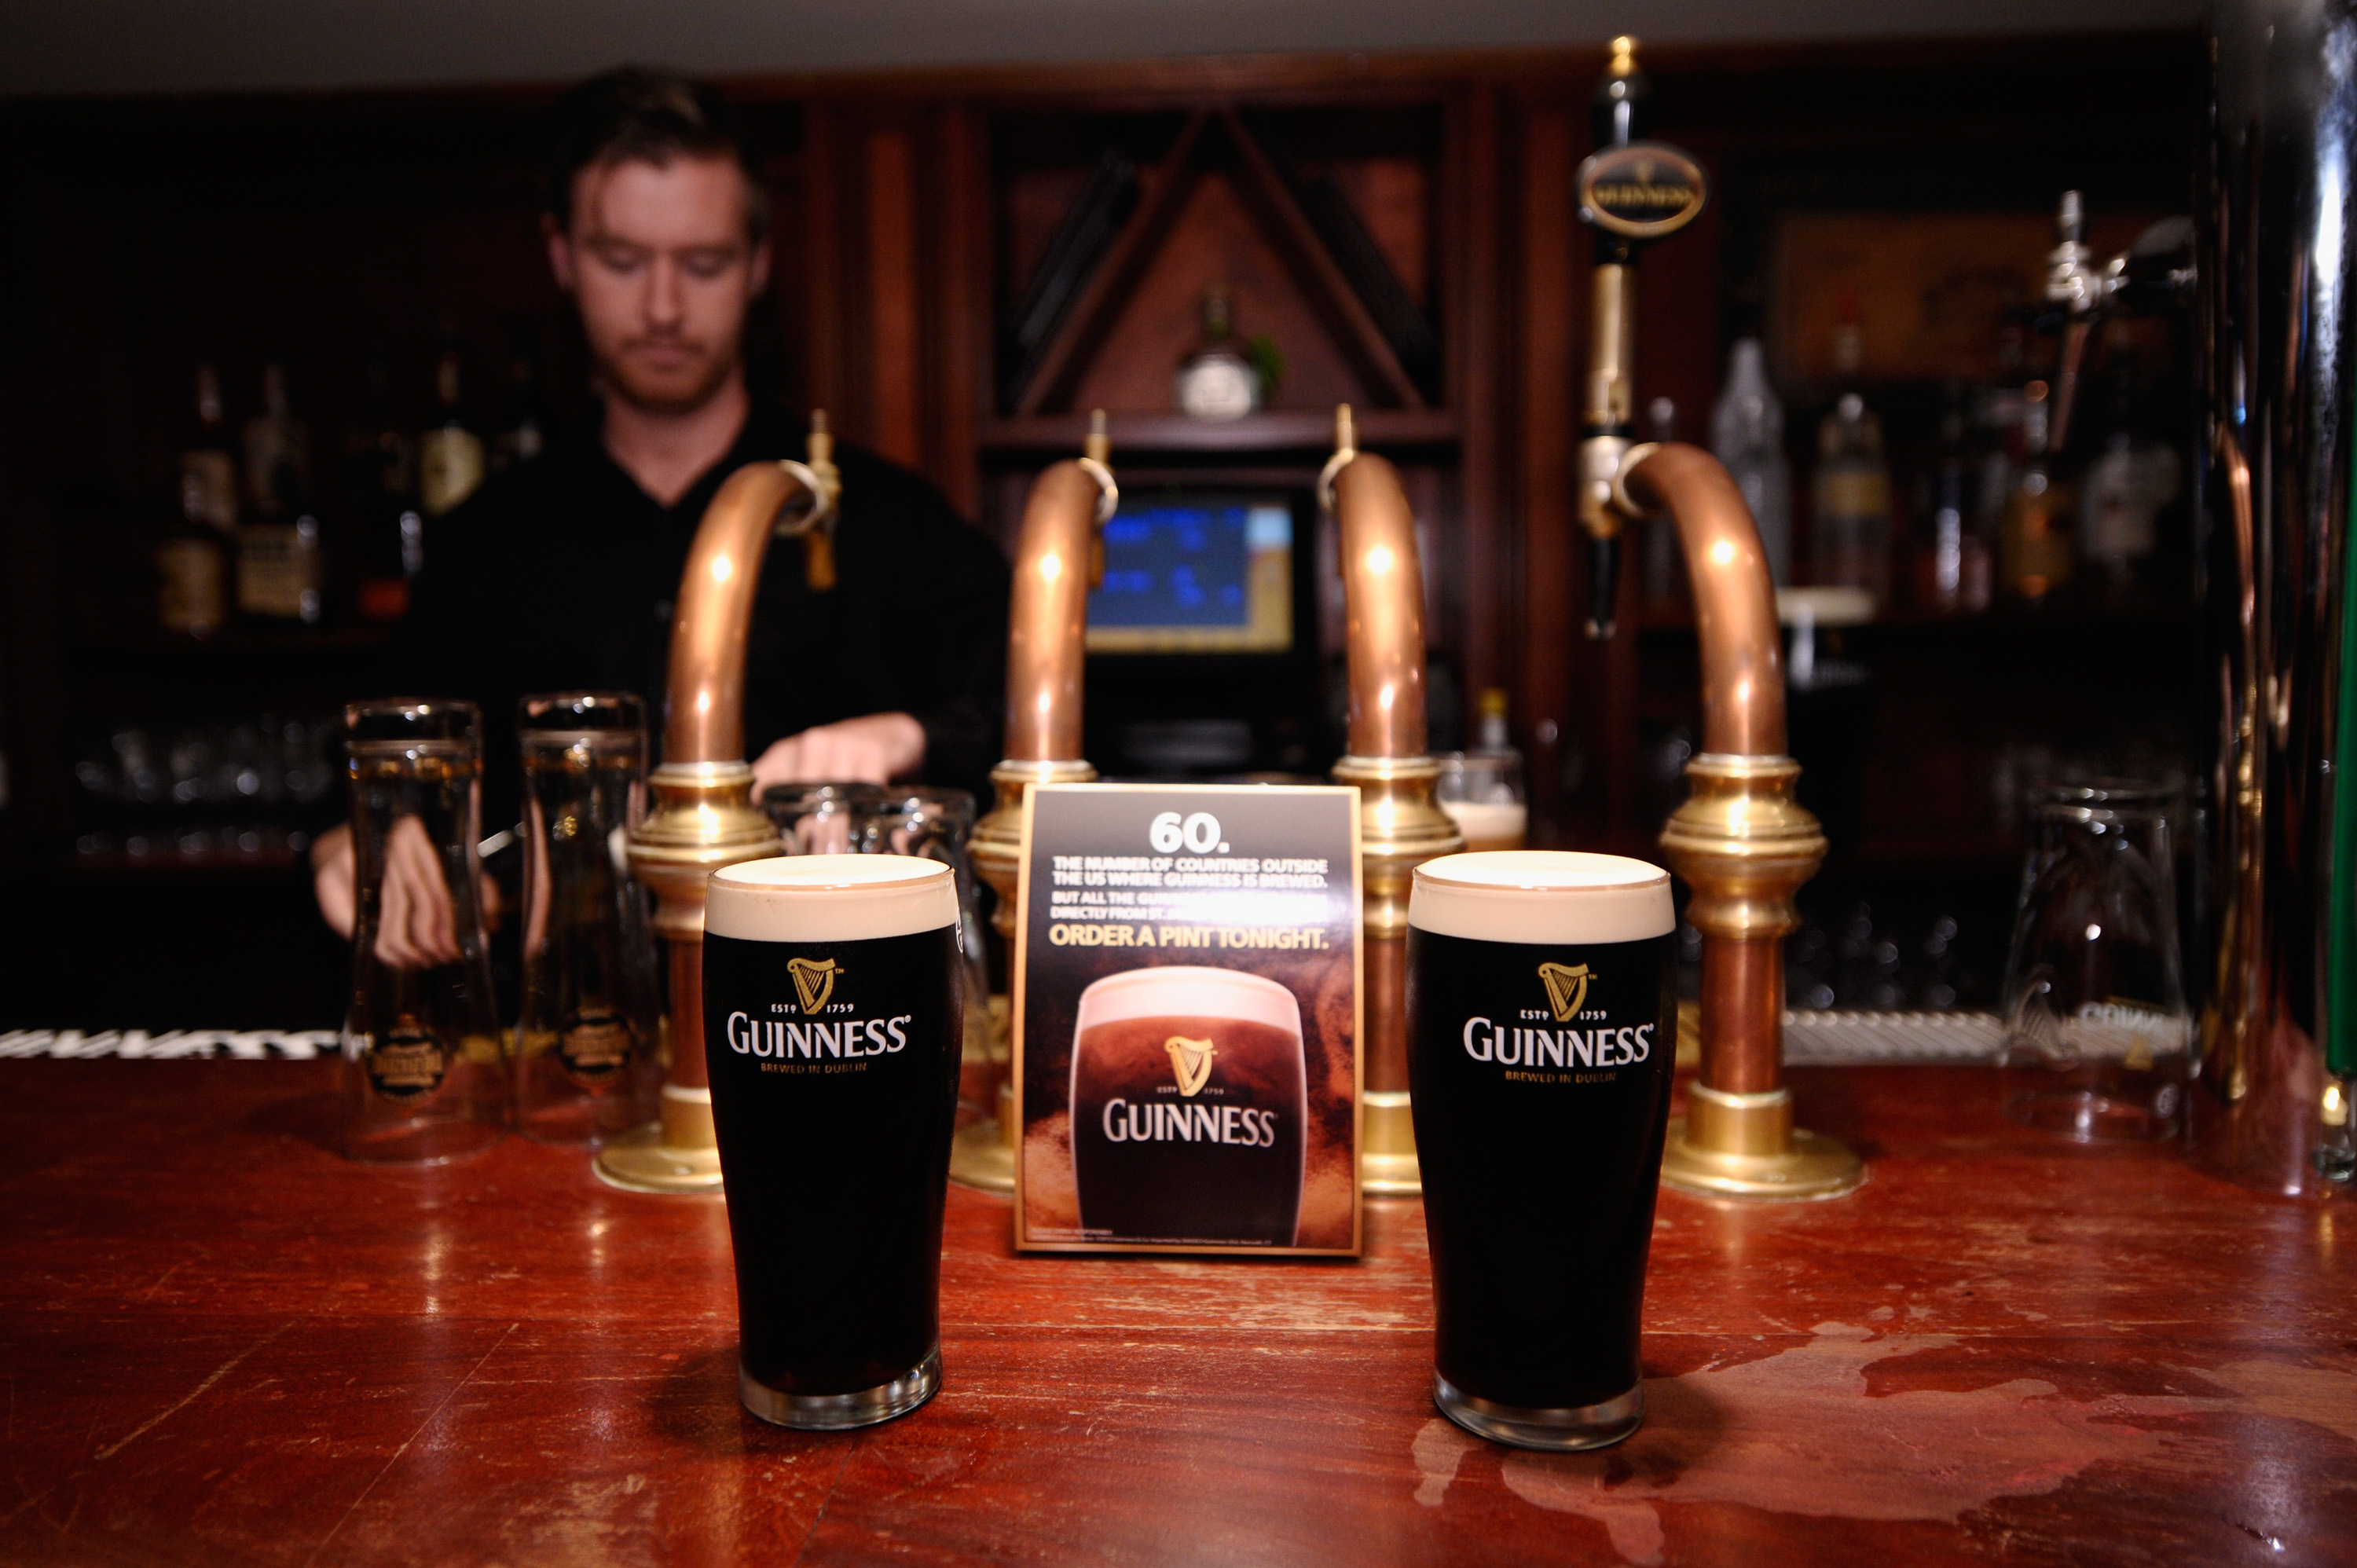 Who's ready for a Guinness?